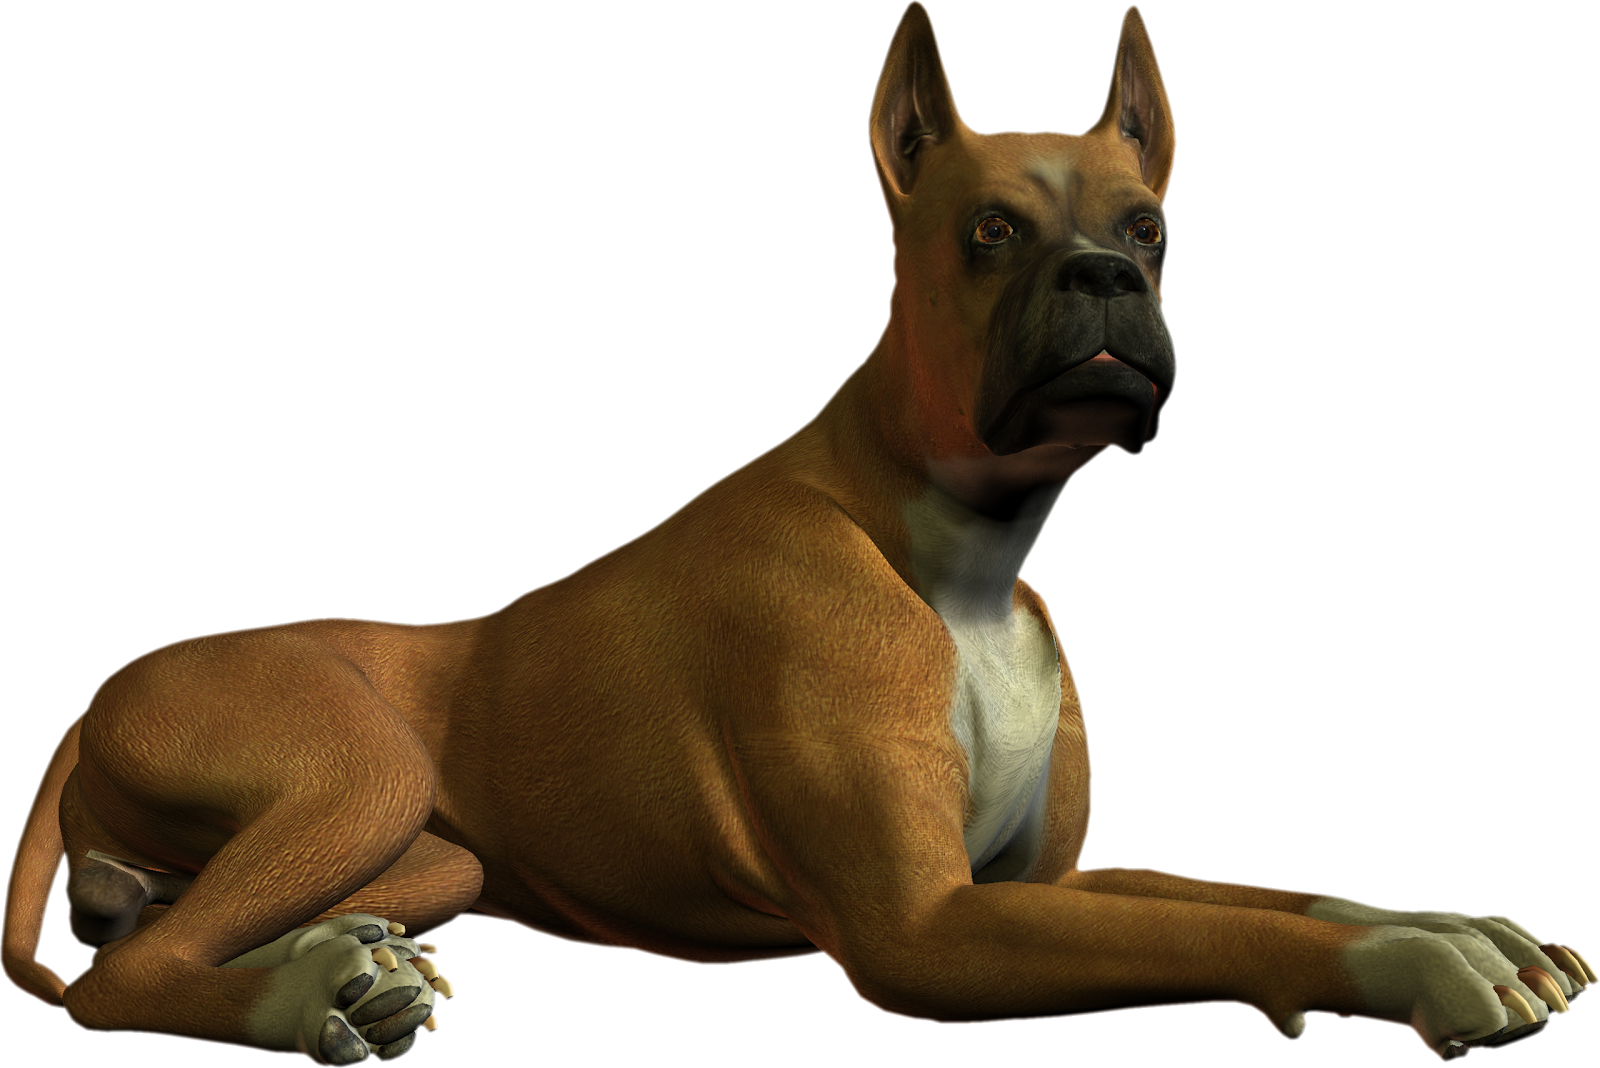 Free High Resolution graphics and clip art: dog png.